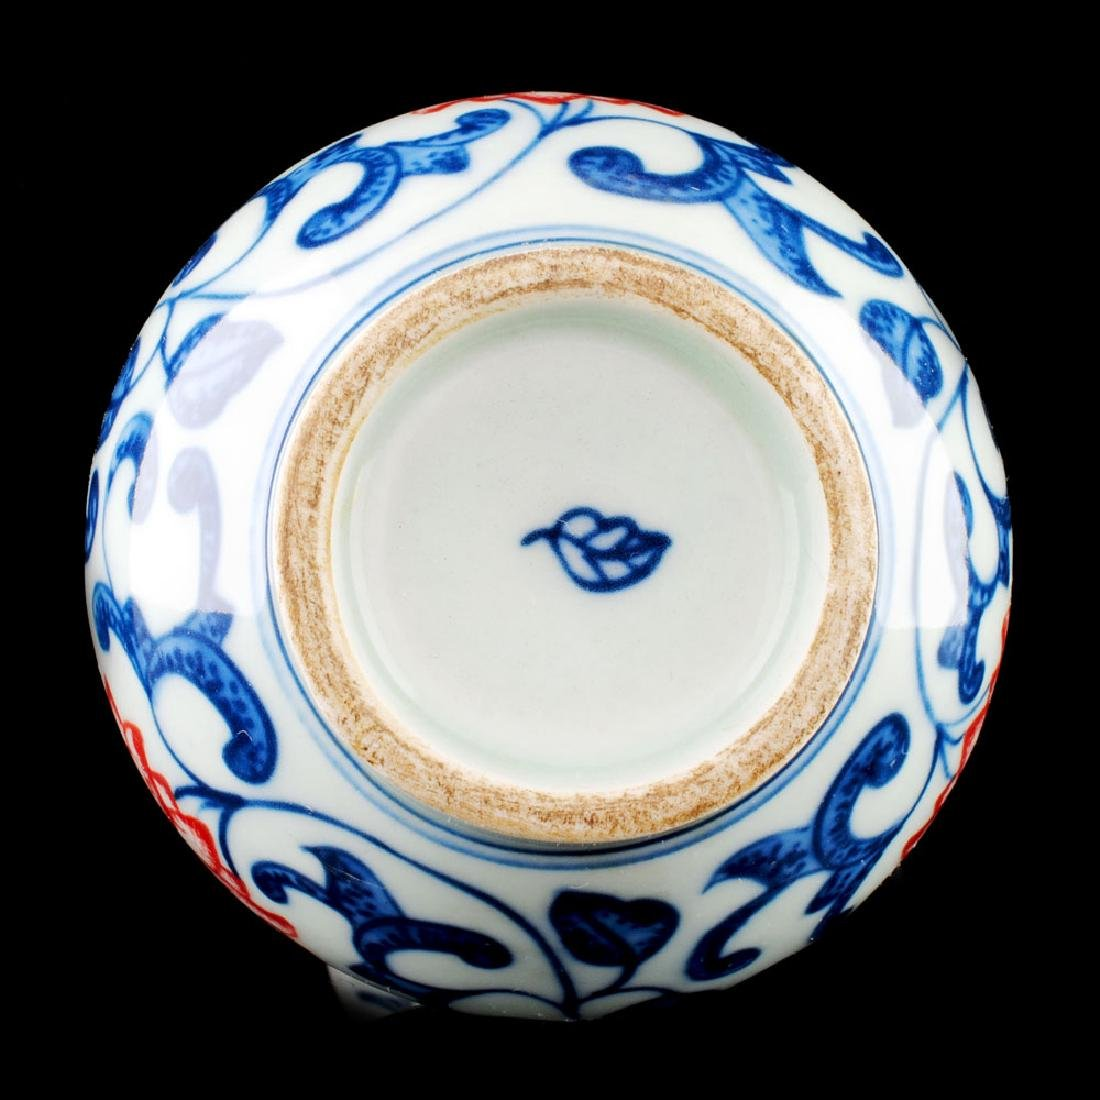 Chinese Chin Dynasty Style White/Blue & Red Vase - 3